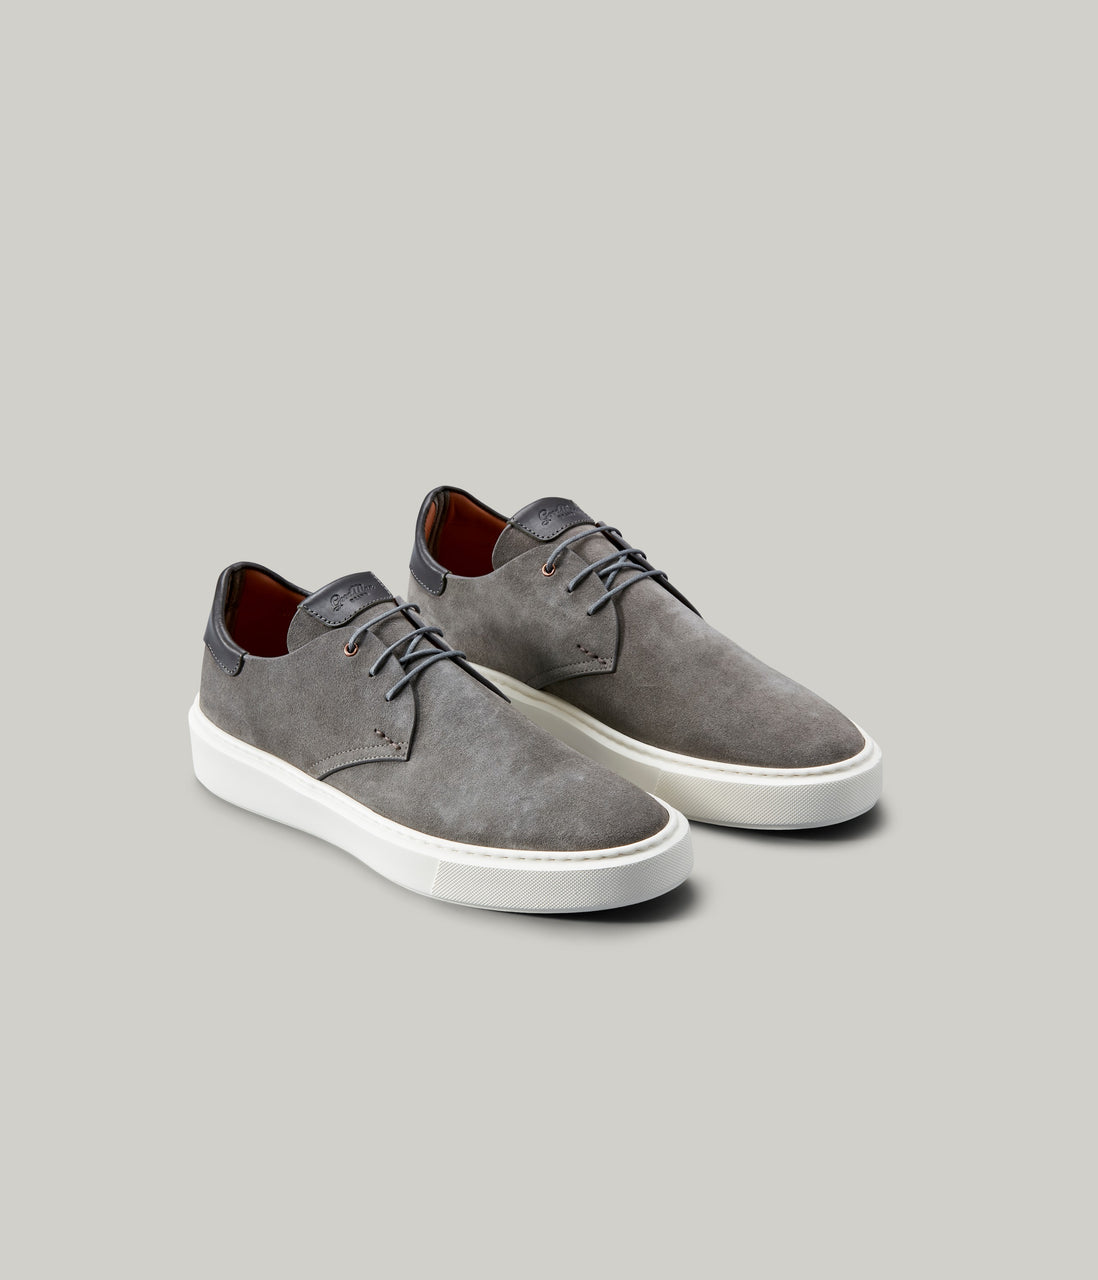 Modern Hybrid Derby Shoe - Grey - Good Man Brand - Modern Hybrid Derby Shoe - Grey